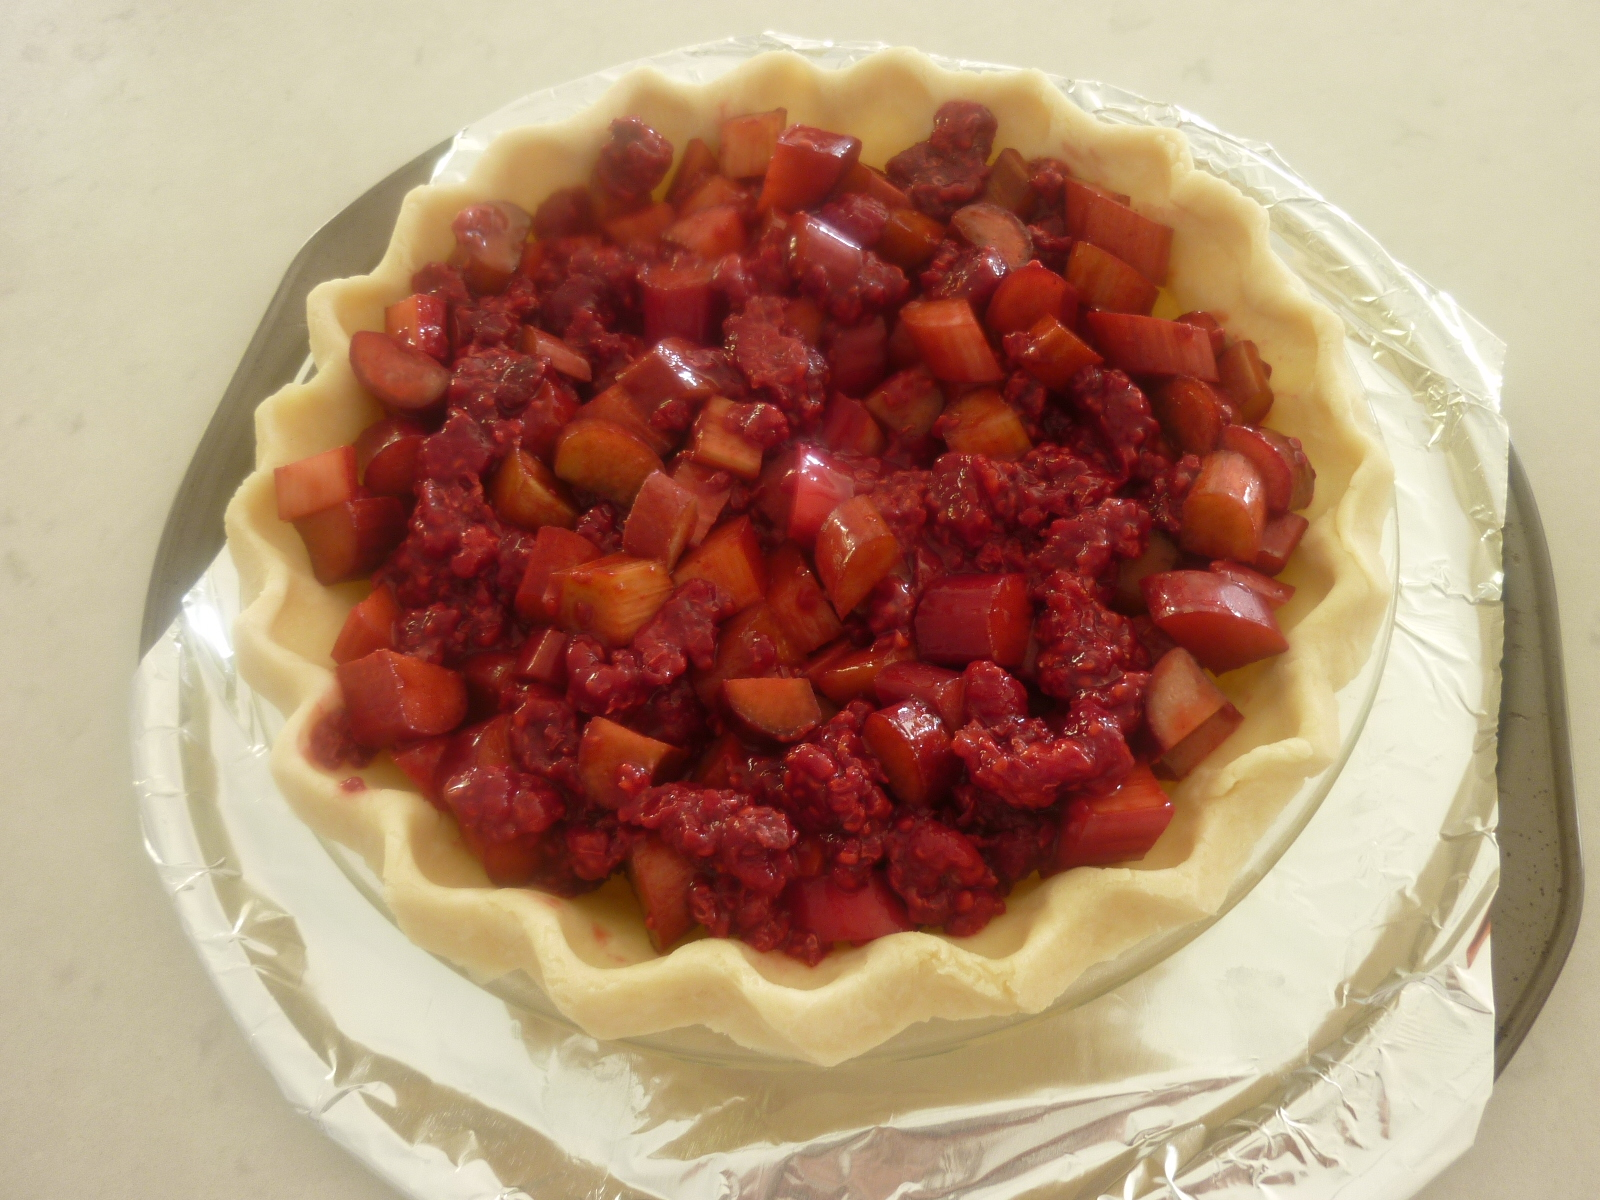 Accounting For All My Blessings: Rhubarb-Raspberry Custard Pie